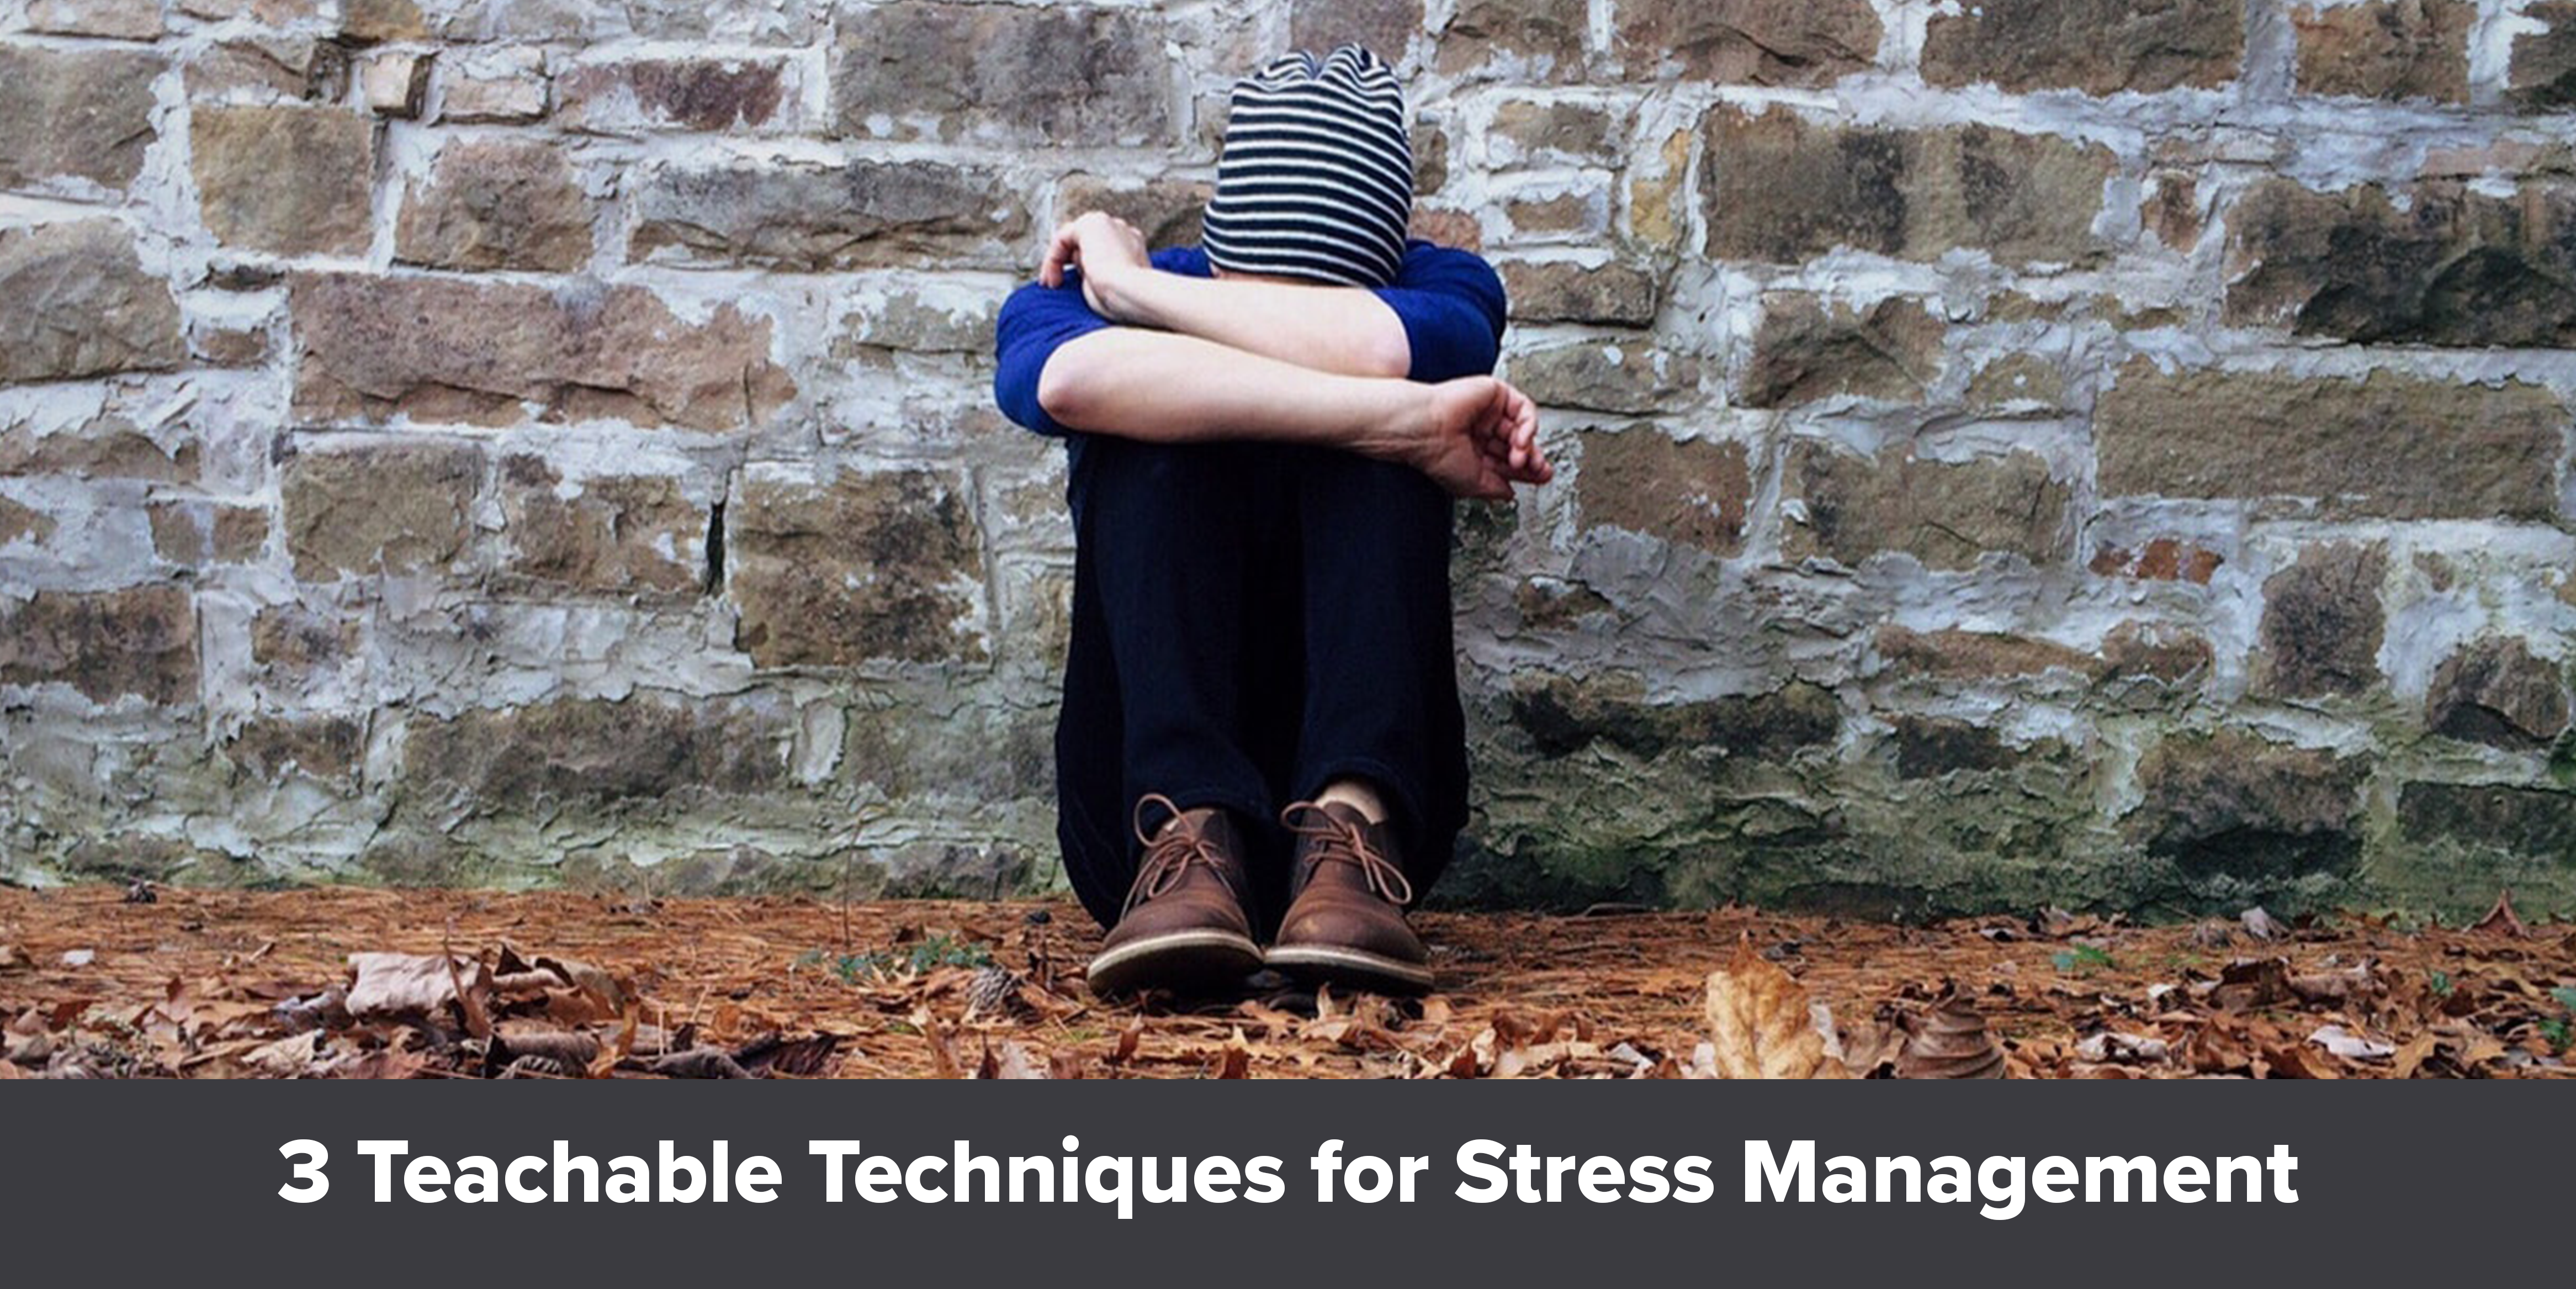 Three Teachable Techniques for Stress Management